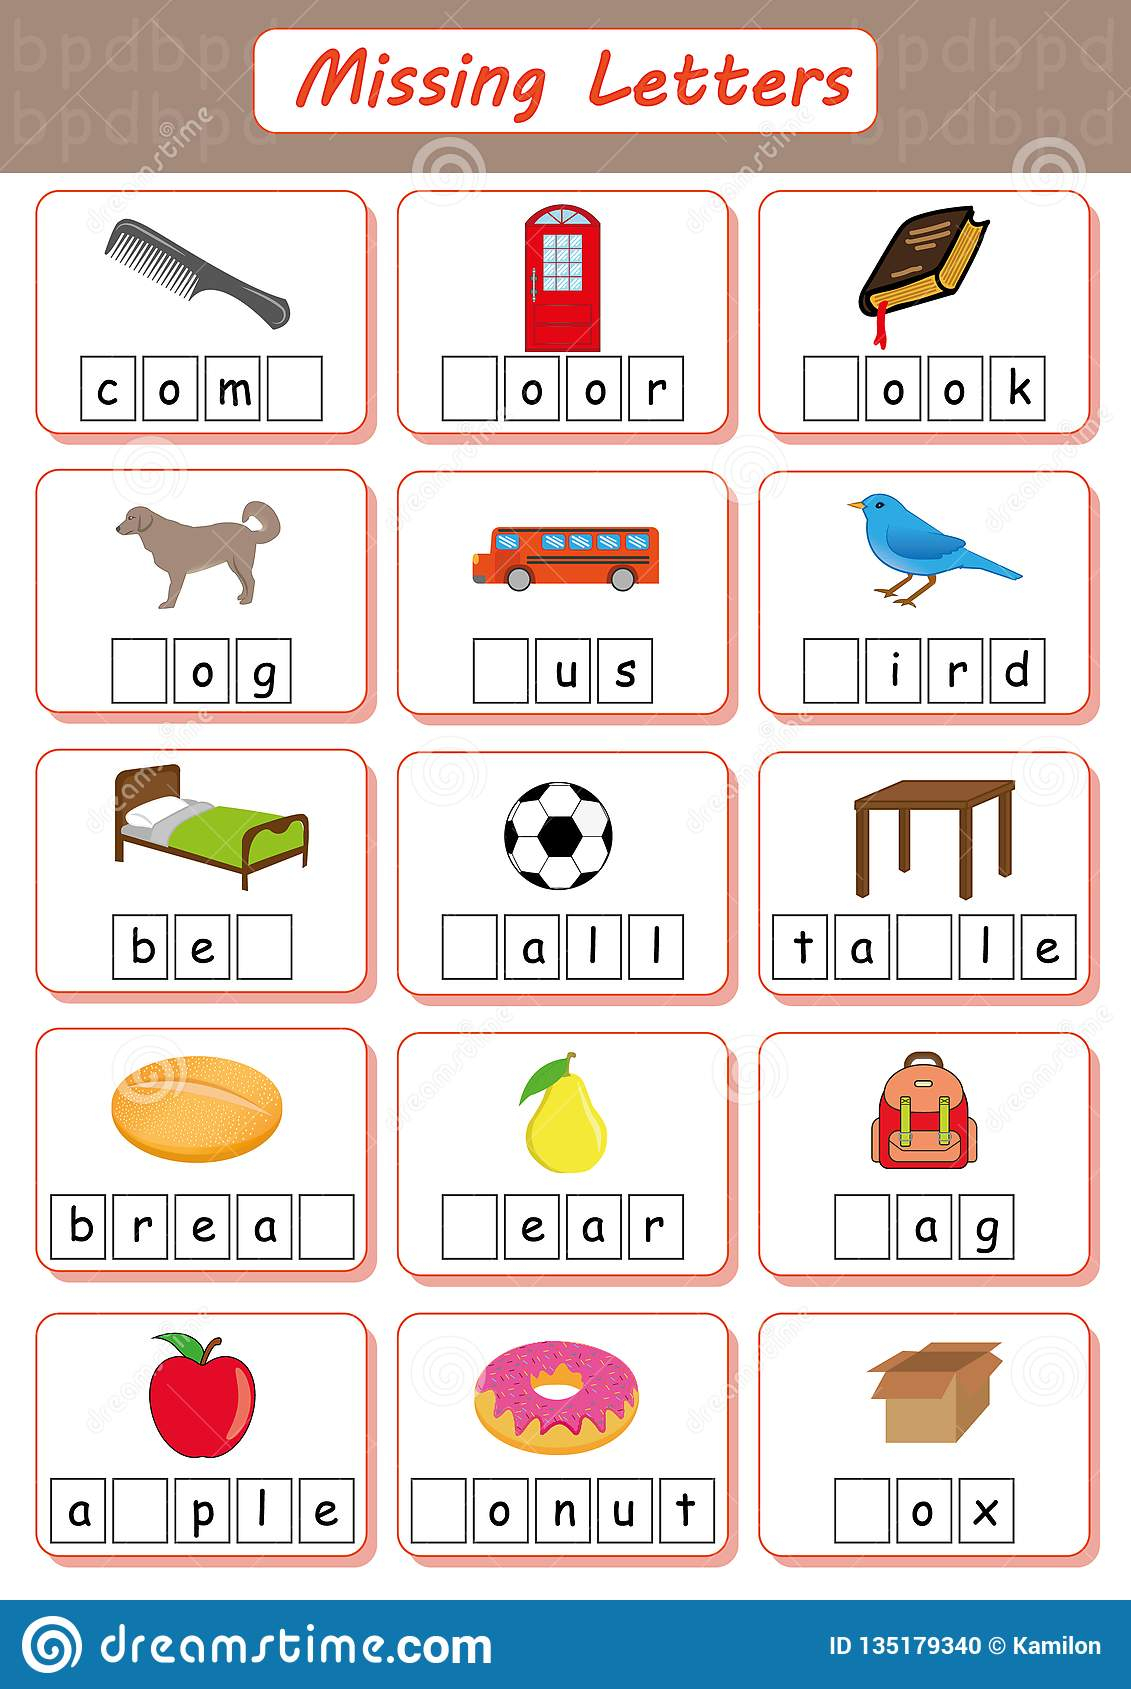 Missing Letters, Find The Missing Letters And Write Them In for Alphabet Worksheets For Dyslexia